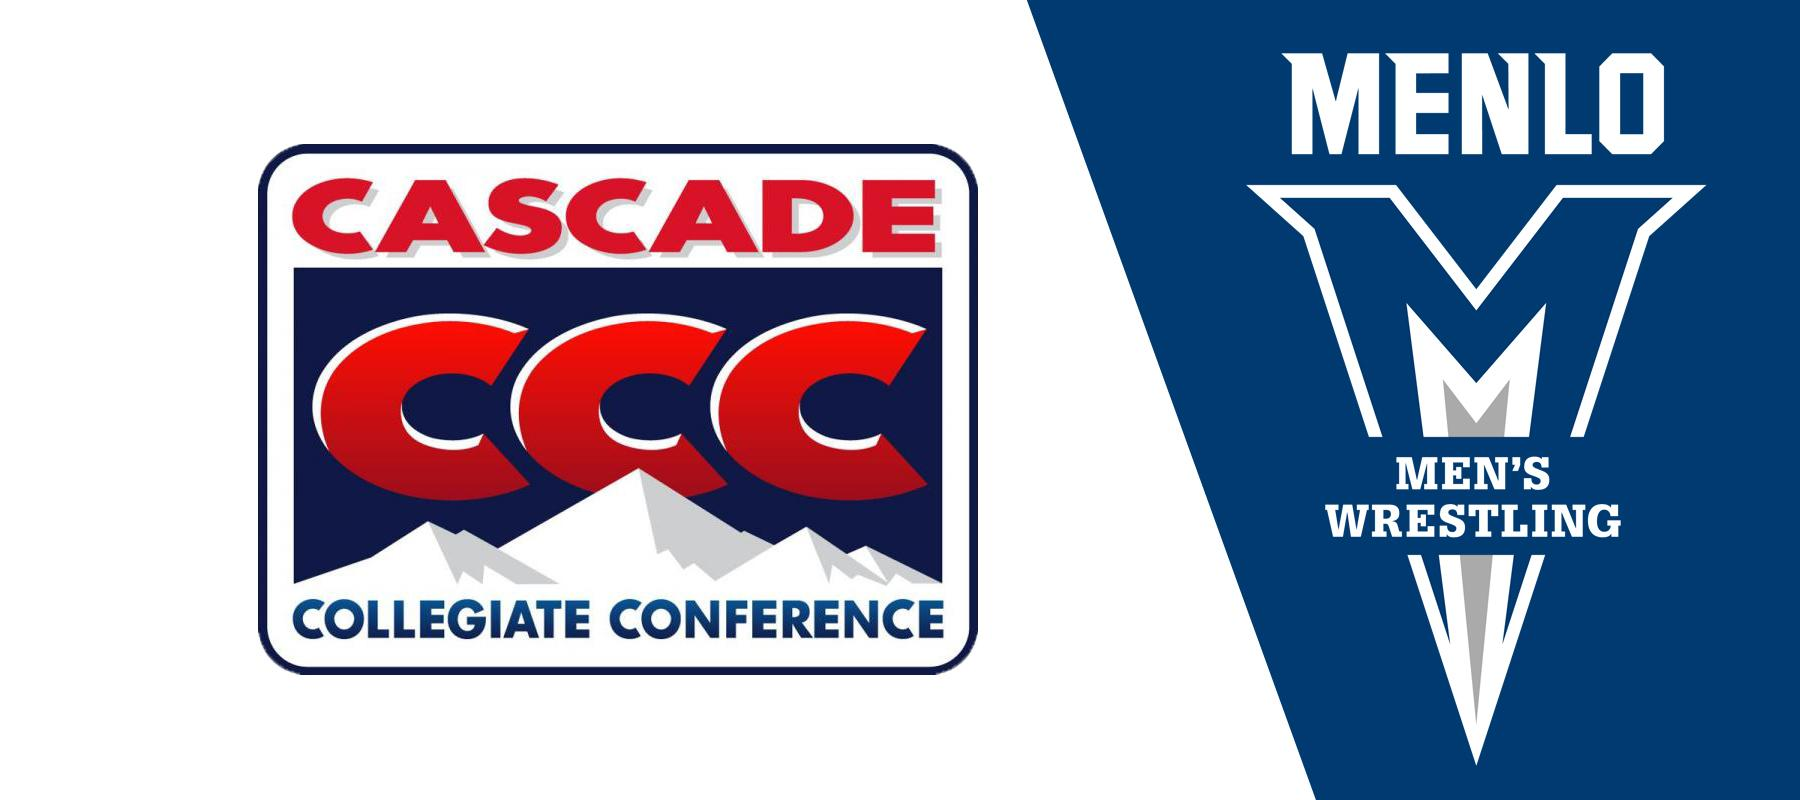 Men's Wrestling Joins Cascade Collegiate Conference